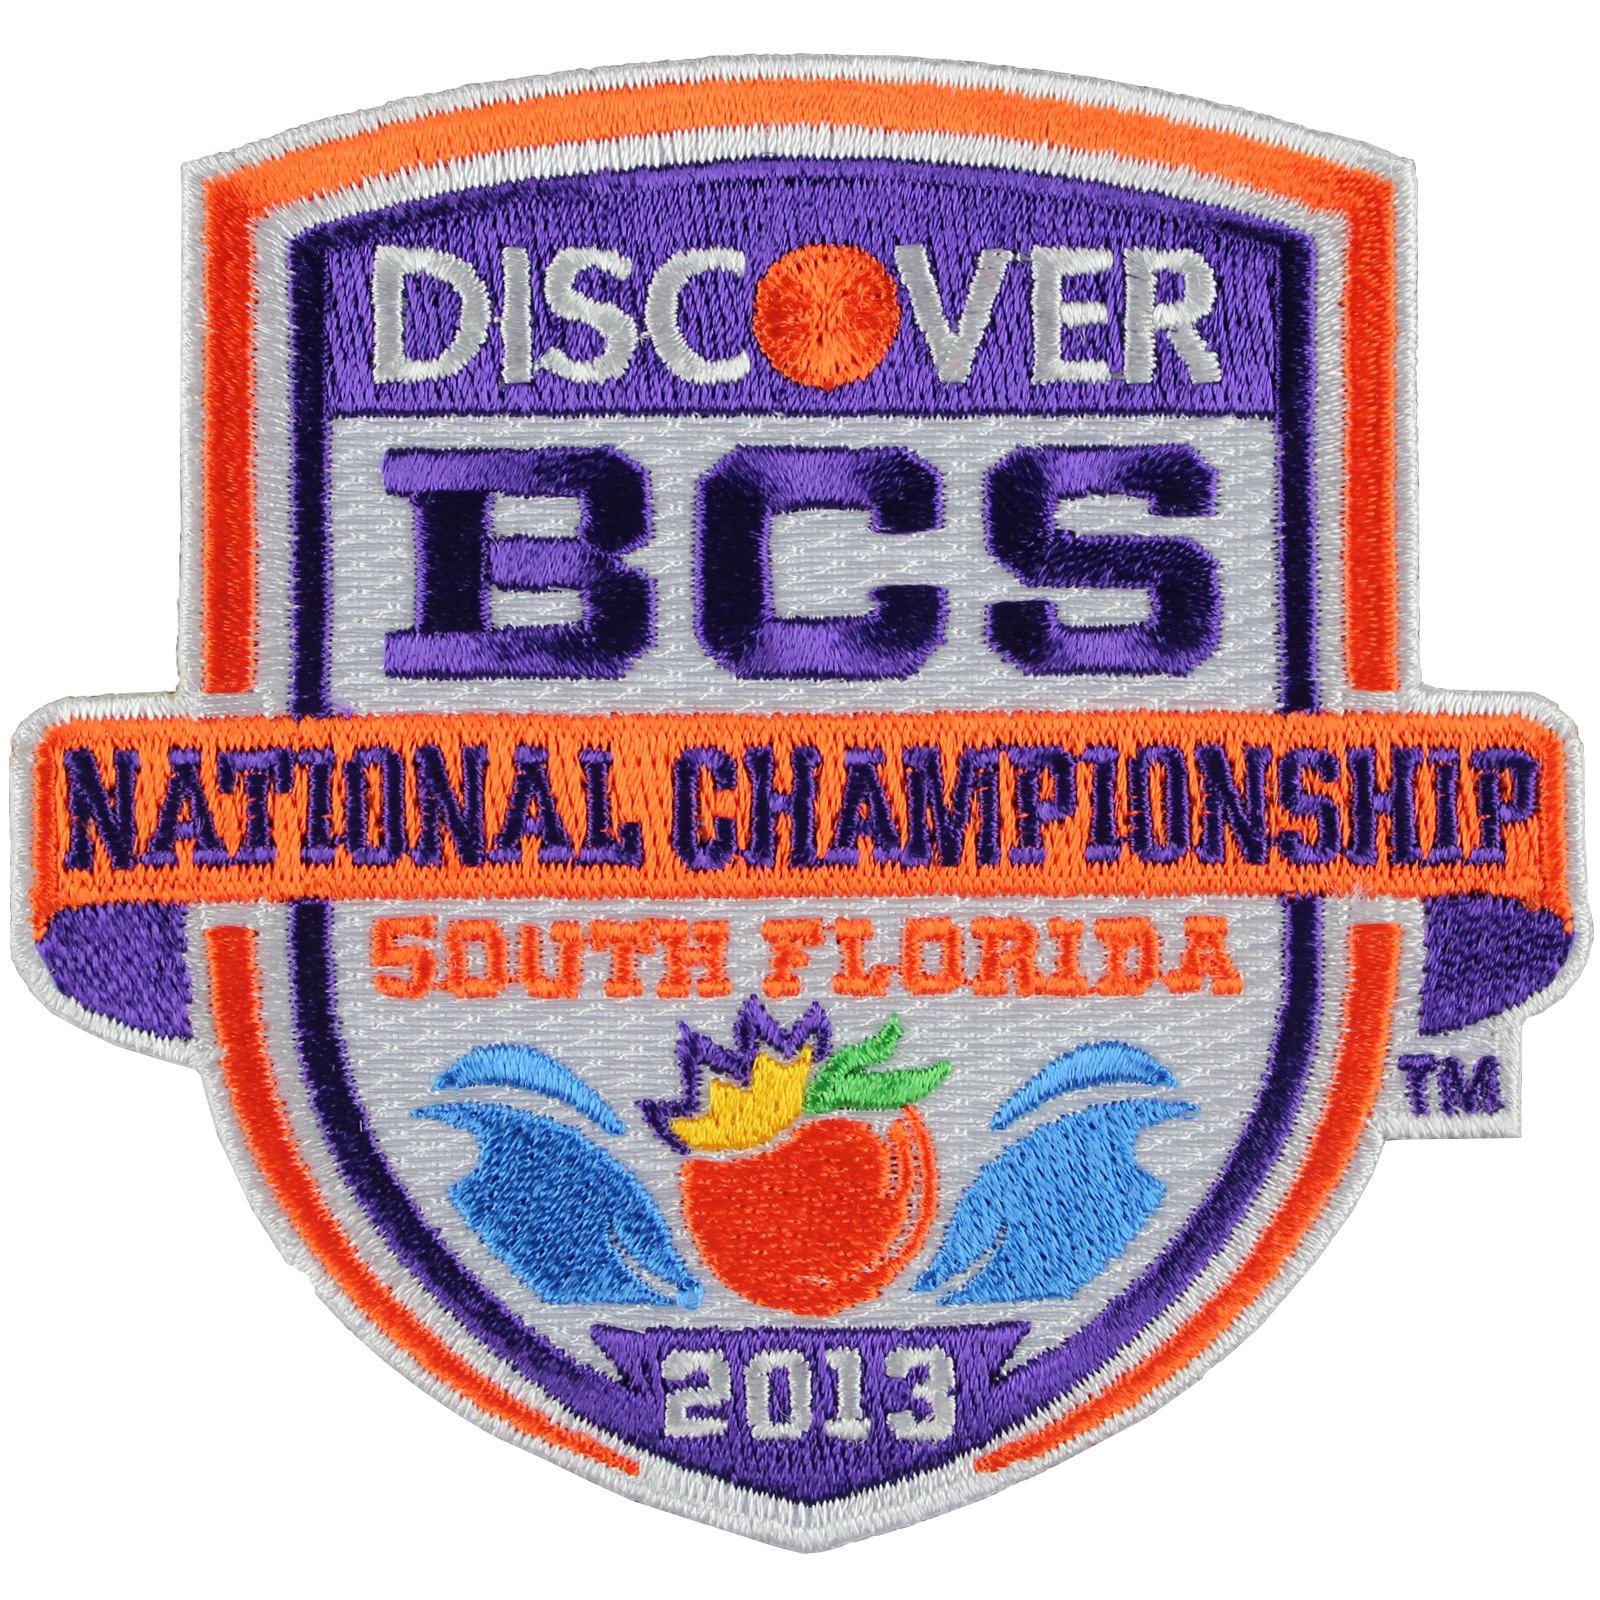 2013 Discover BCS National Championship Game Patch (Notre Dame vs. Alabama)